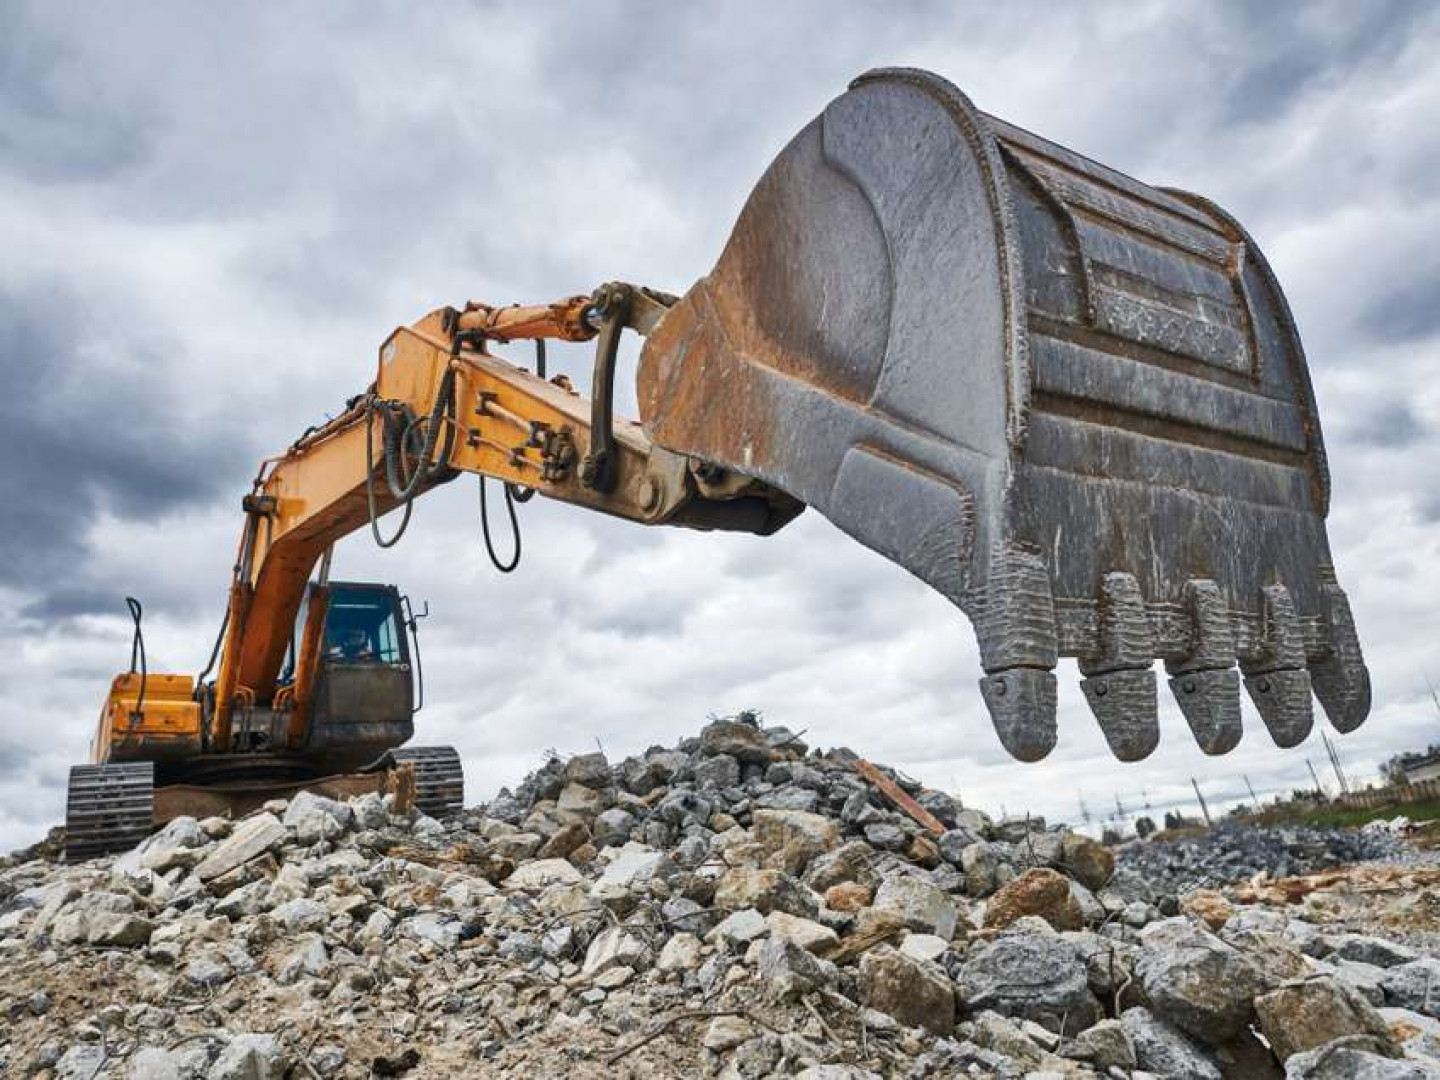 Rely on us for safe and effective demolition services in Thornton, CO